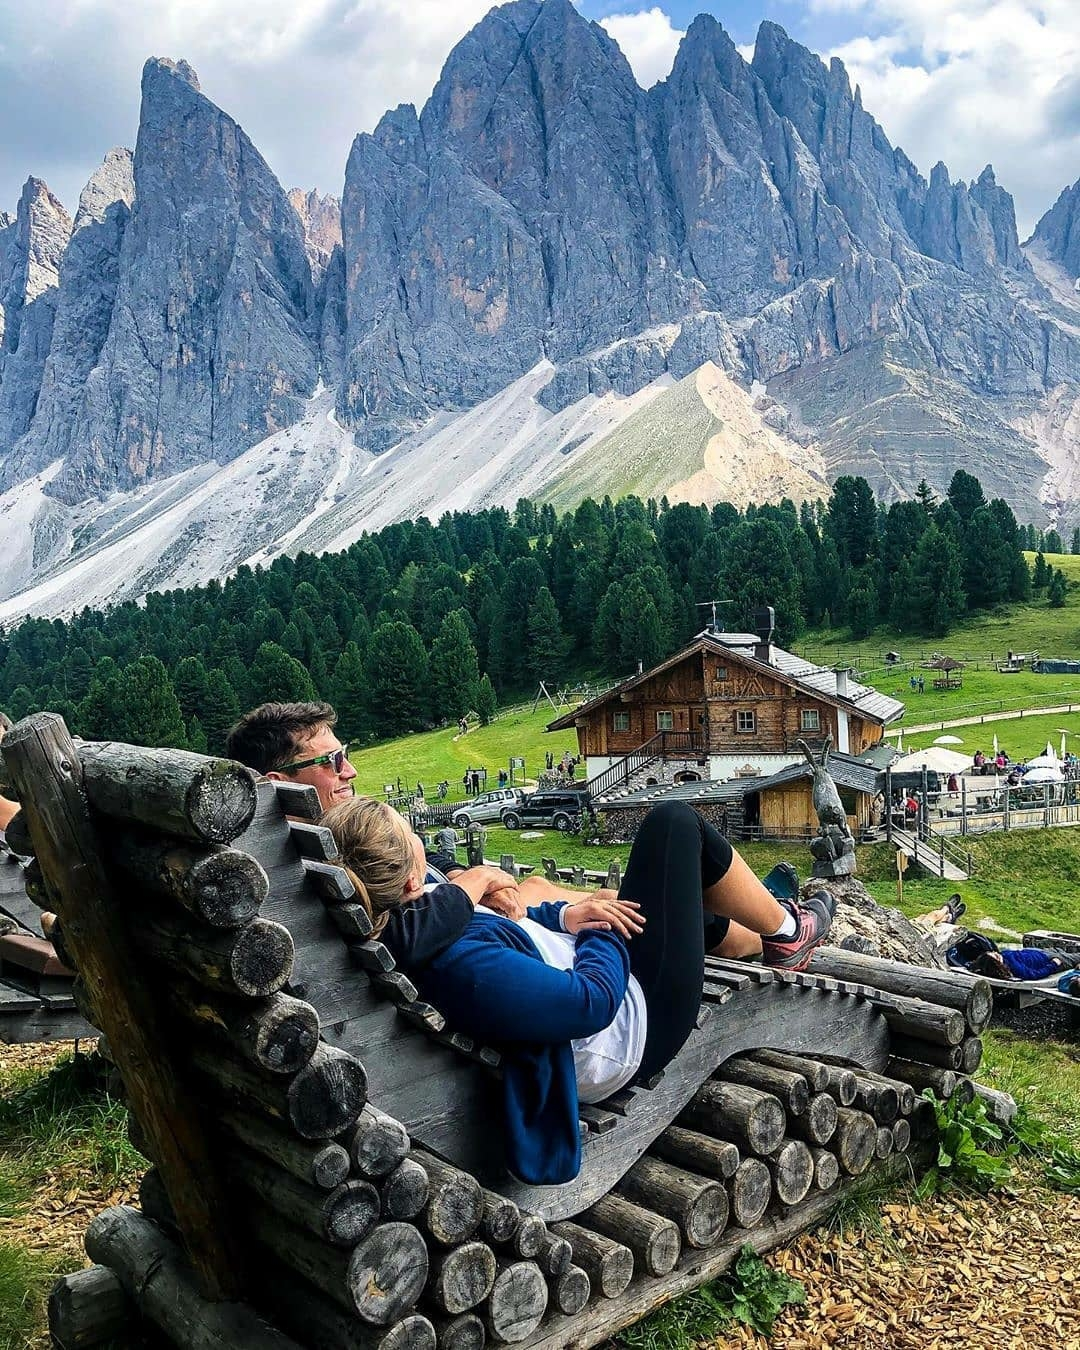 couple relaxing with view of mountains